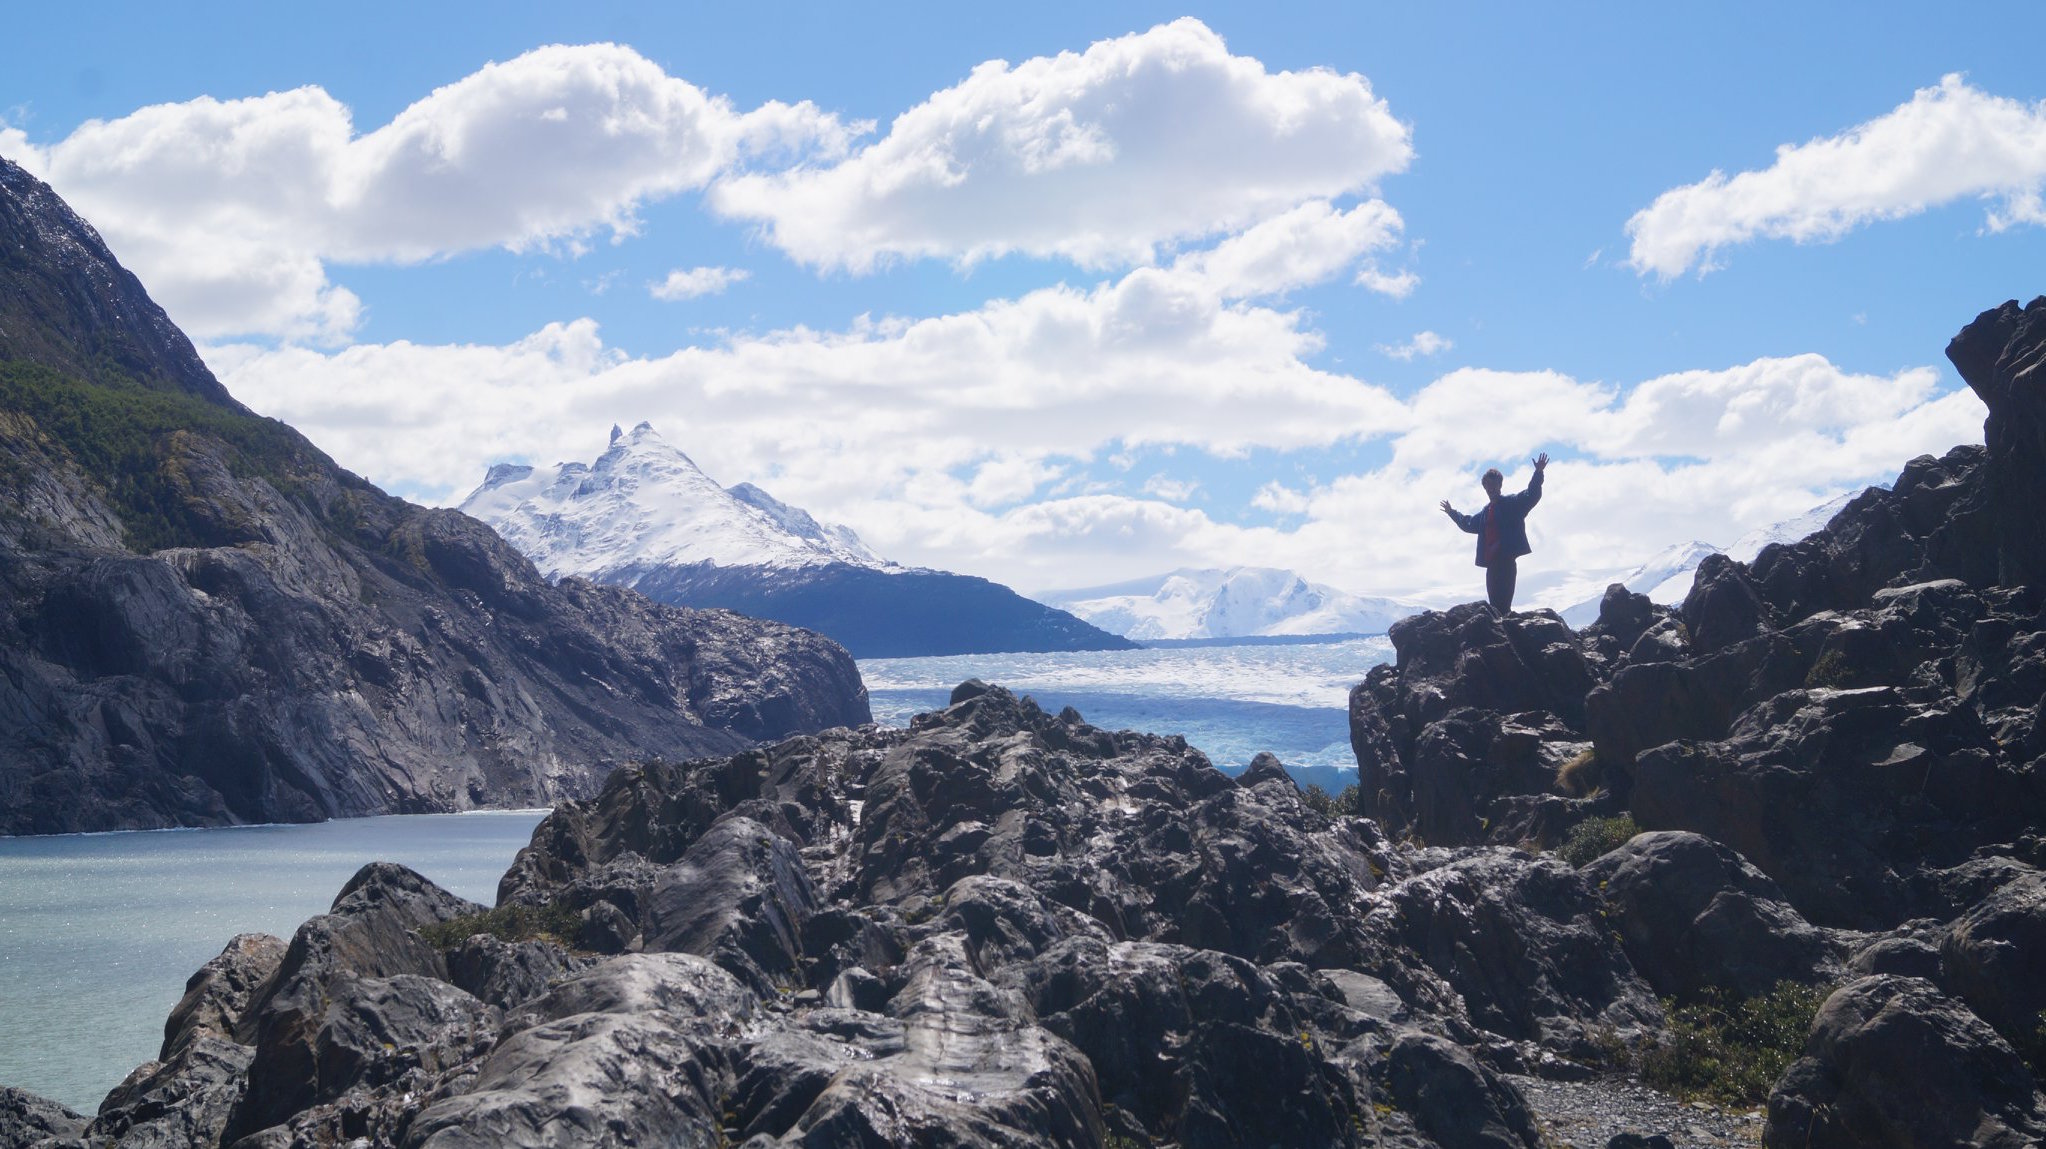 Reaching the remote Grey Glacier in Chilean Patagonia, which loses acres of ice annually due to climate change.